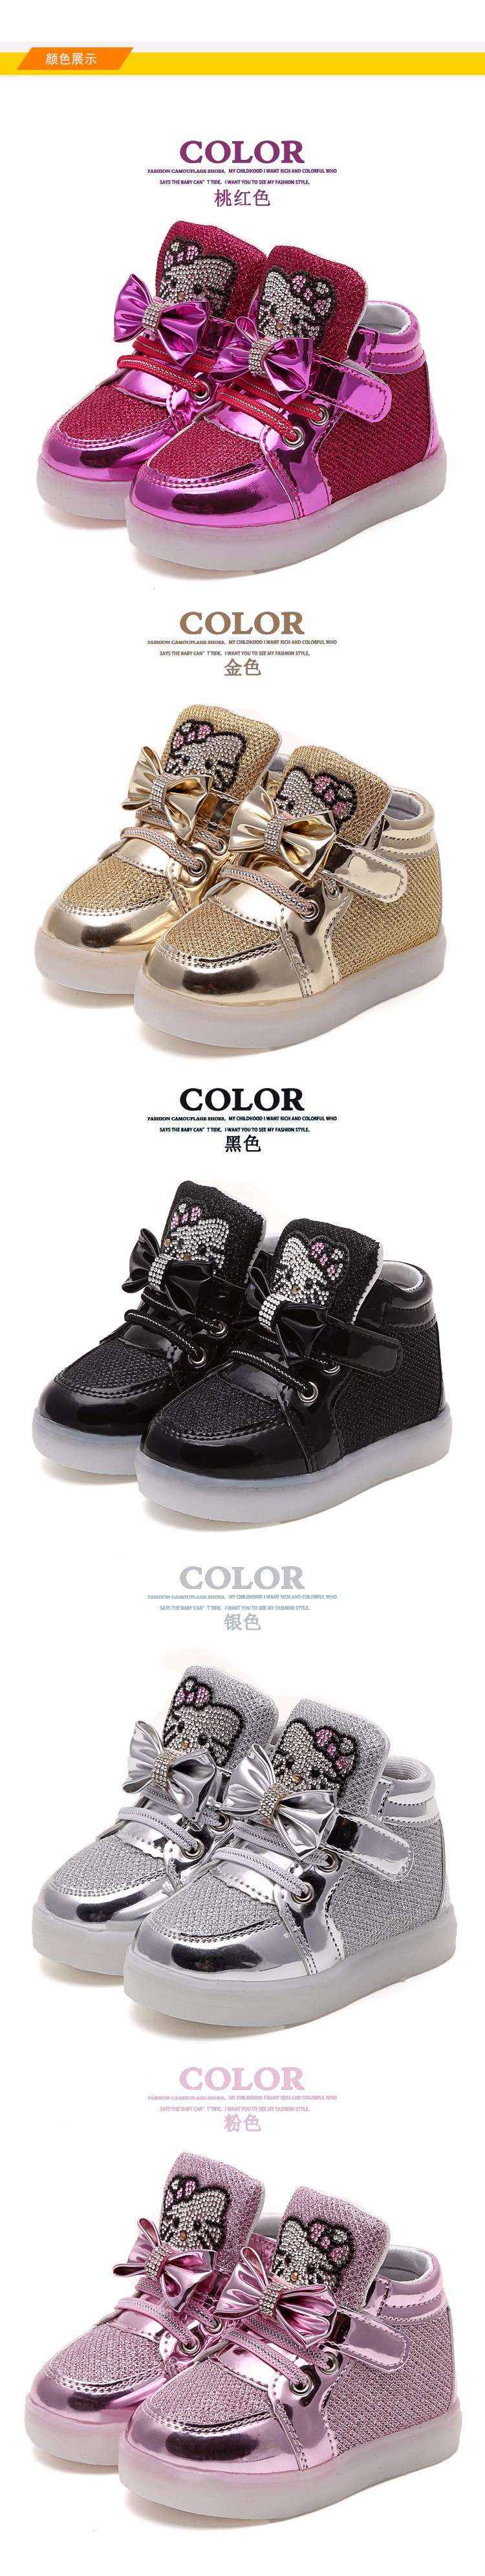 Kids Casual Lighted Shoes Girls Glowing Sneakers Children Hello